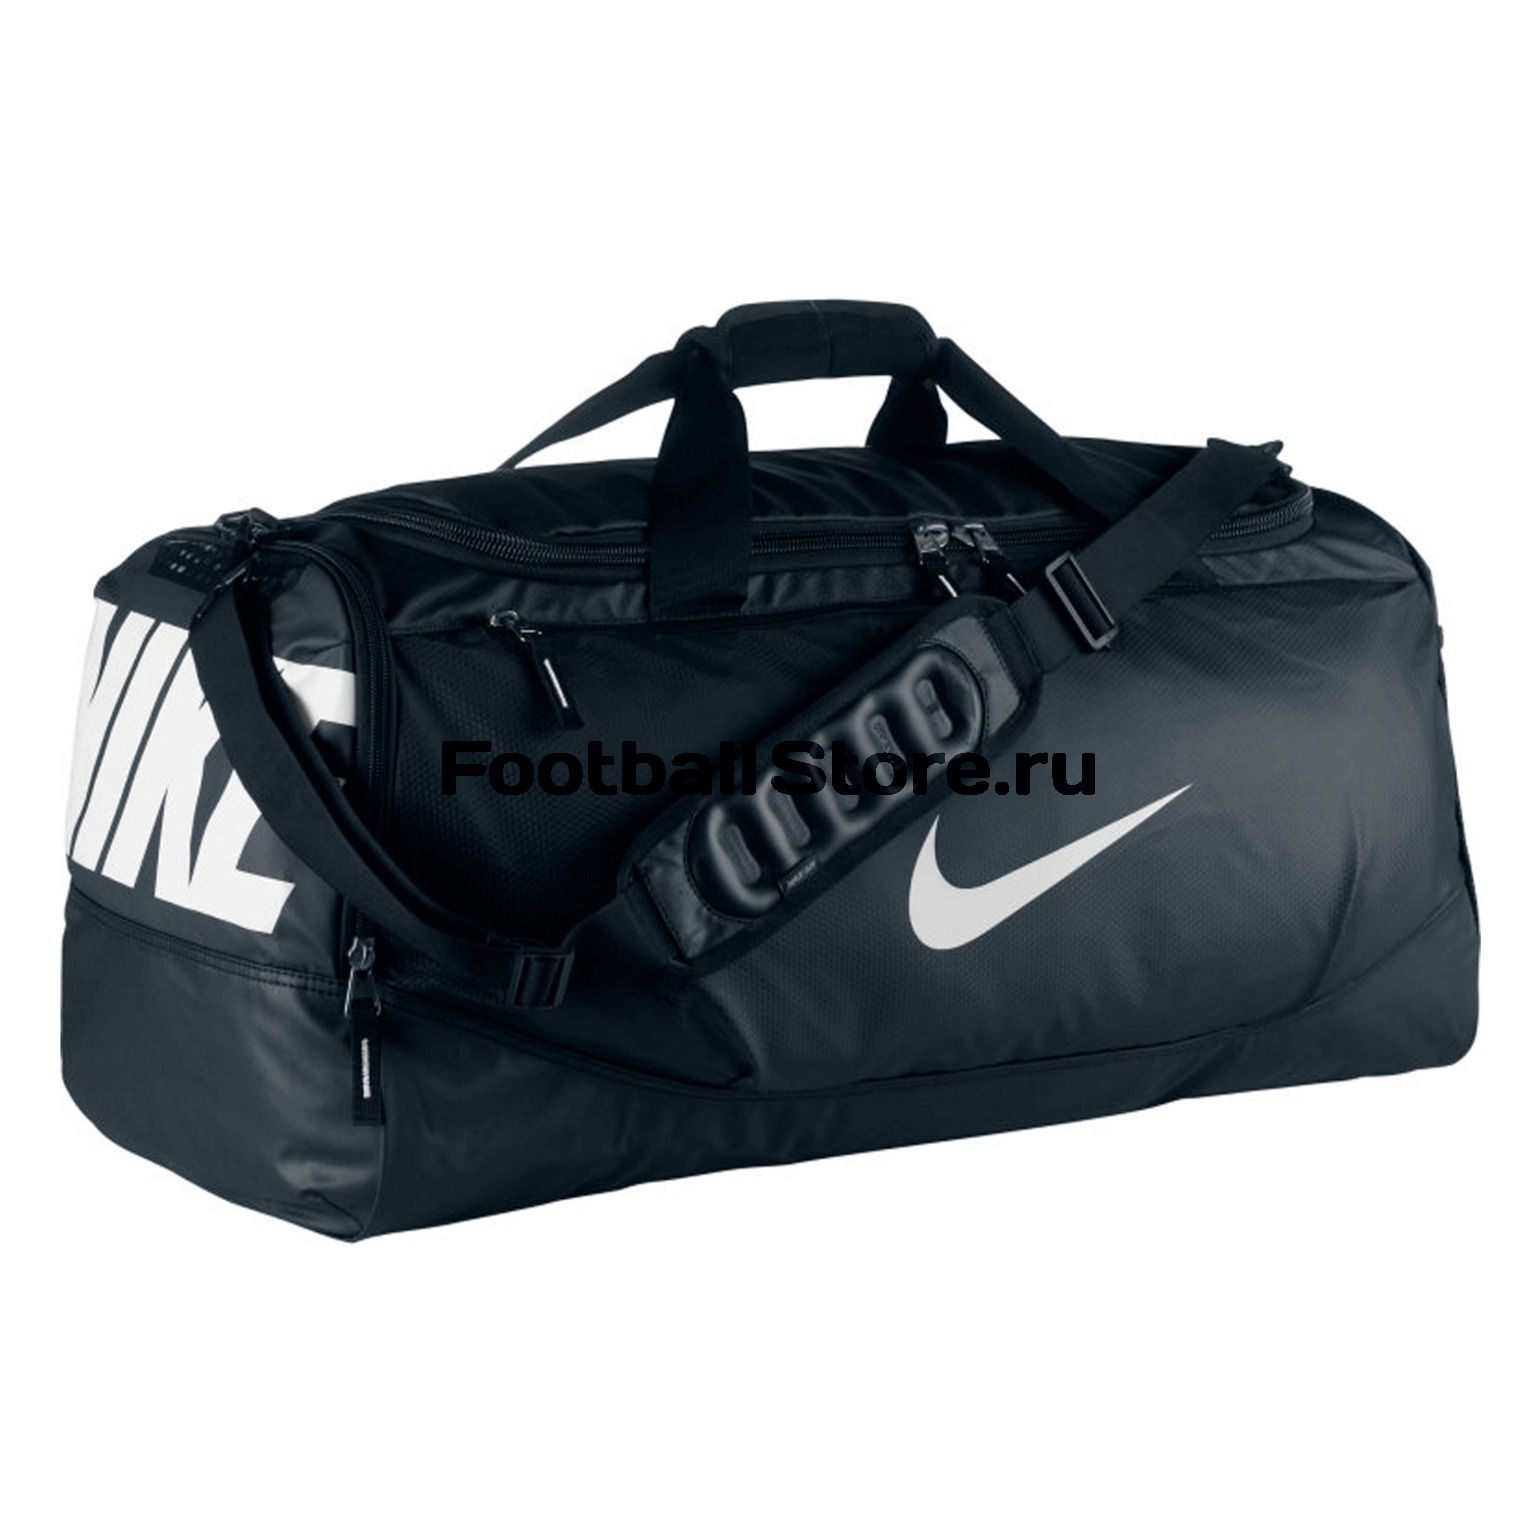 Сумки/Рюкзаки Nike Сумка Nike Team Training MX AIR LG Duffel BA4512-067